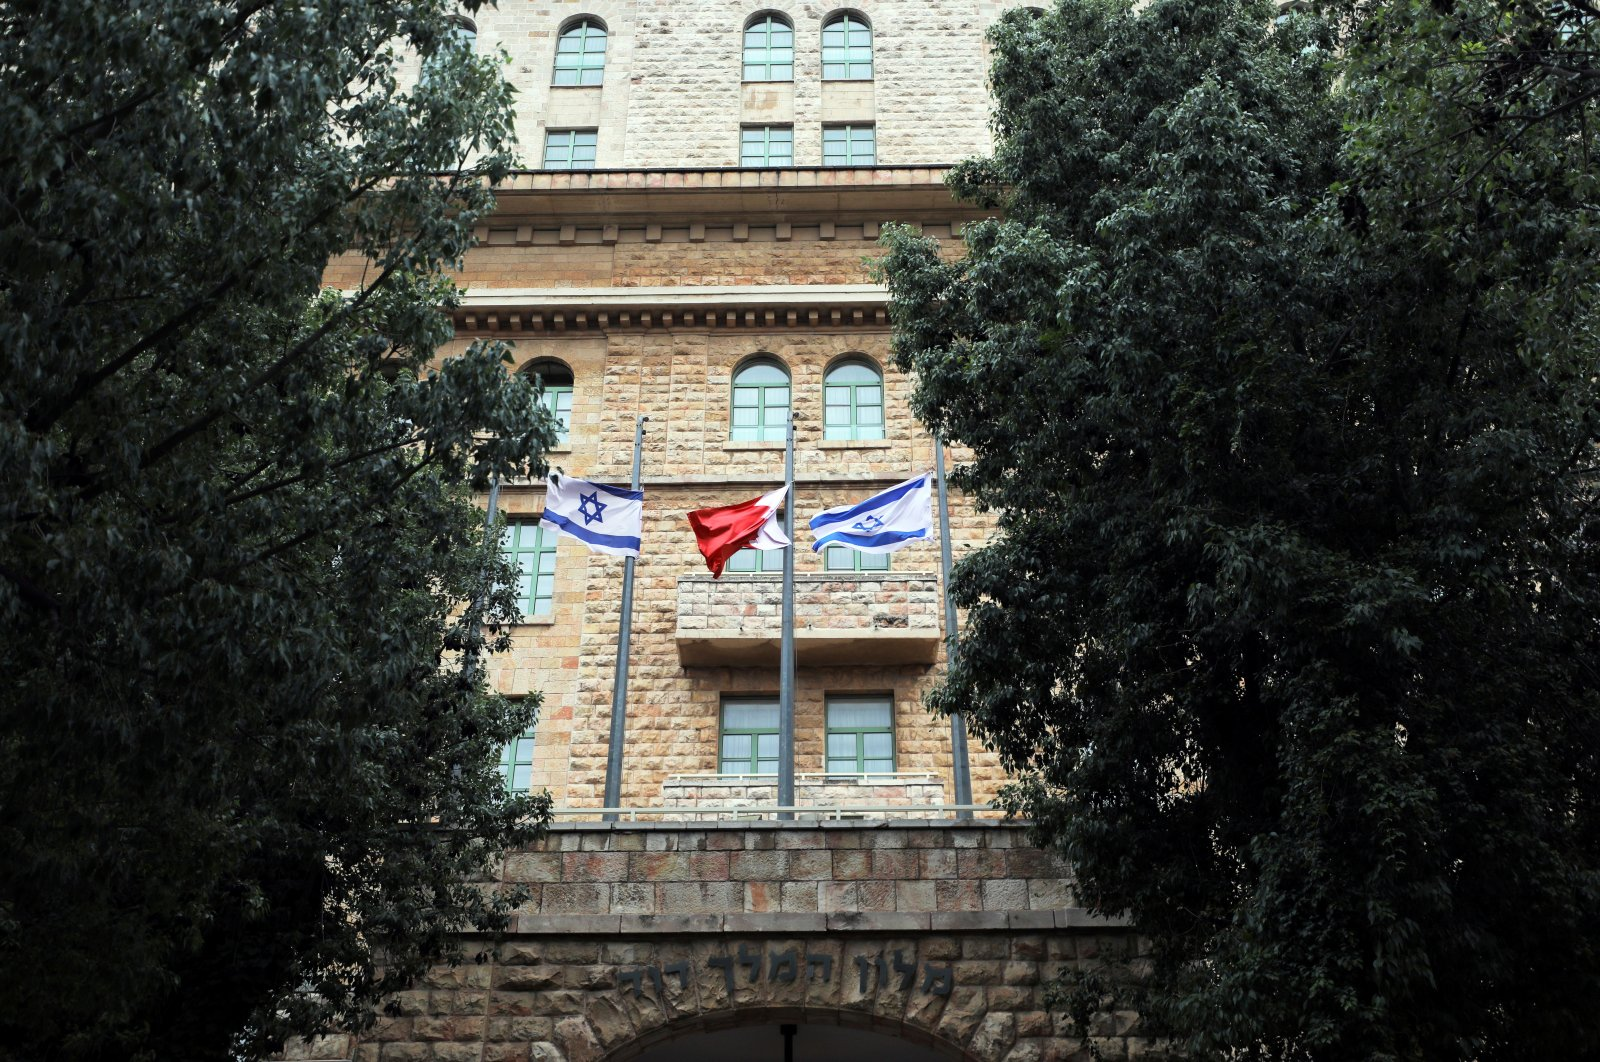 The national flags of Israel and Bahrain flutter at the entrance of the King David Hotel in Jerusalem, Nov. 26, 2020. (Reuters Photo)